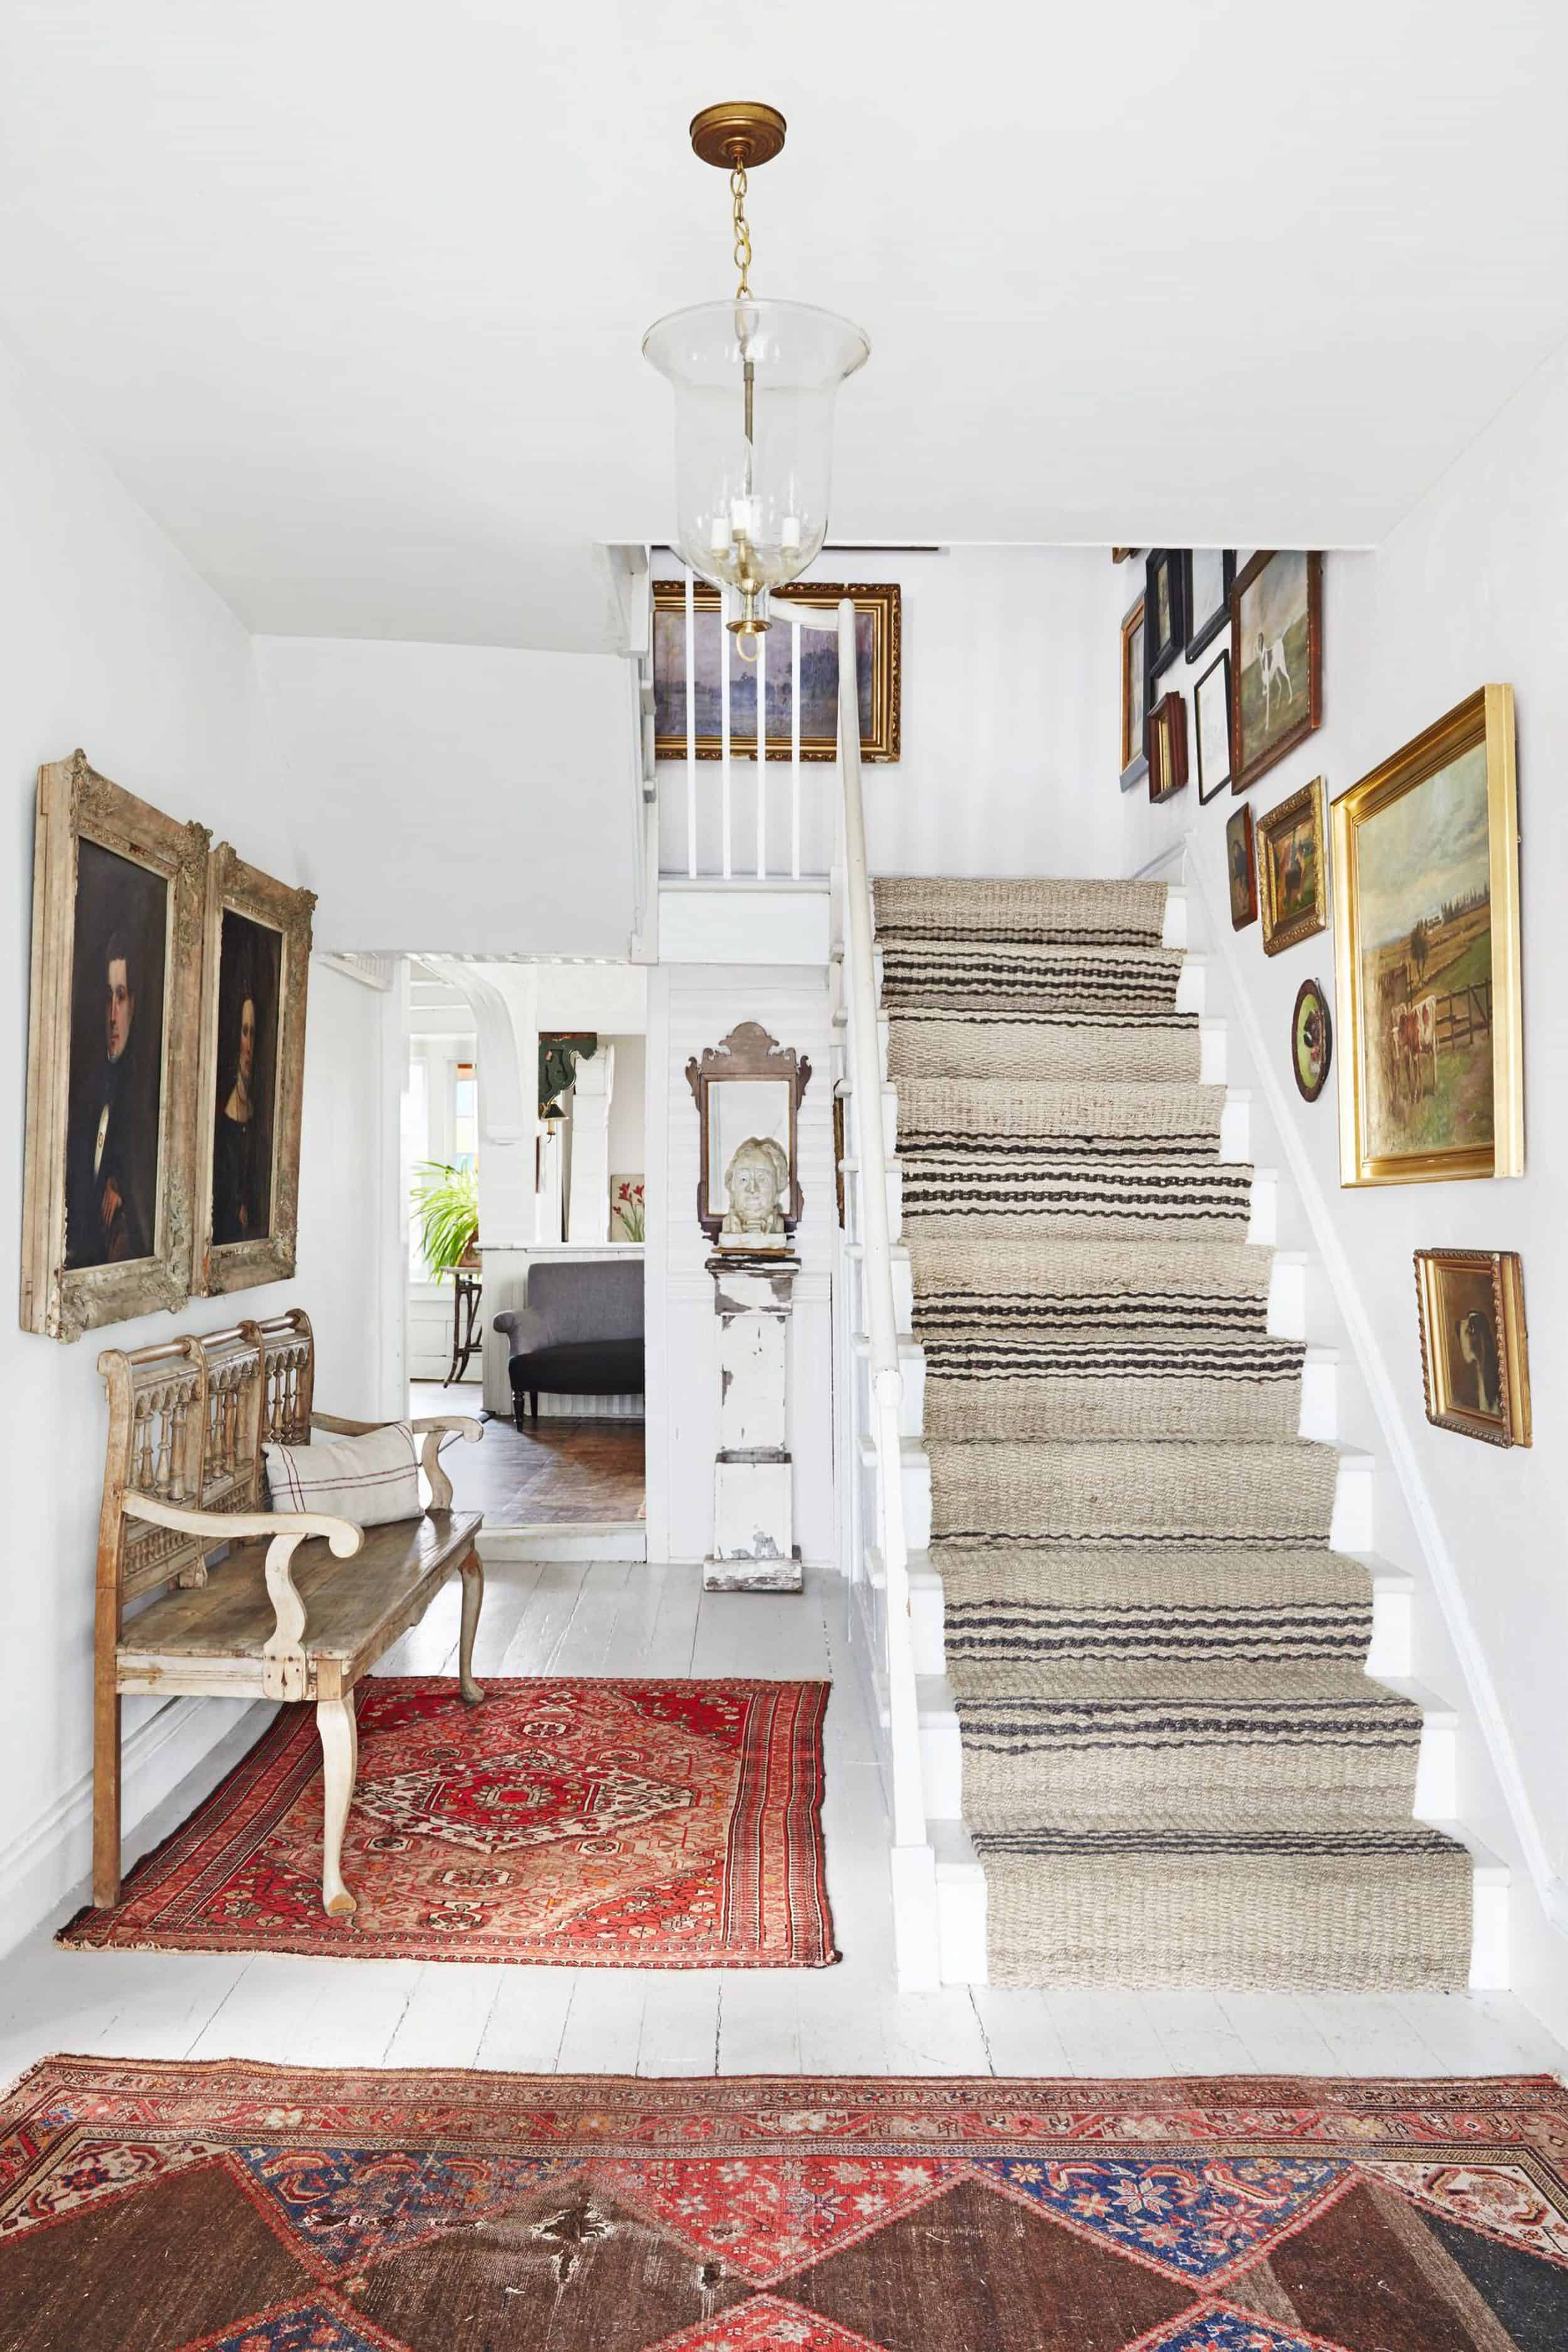 Should I Add A Carpet Or Rug Runner To My Mountain House Staircase   Flor Carpet Tiles For Stairs   Diy Stair   Carpet Runners   Patterned Carpet   Area Rugs   Floor Tiles